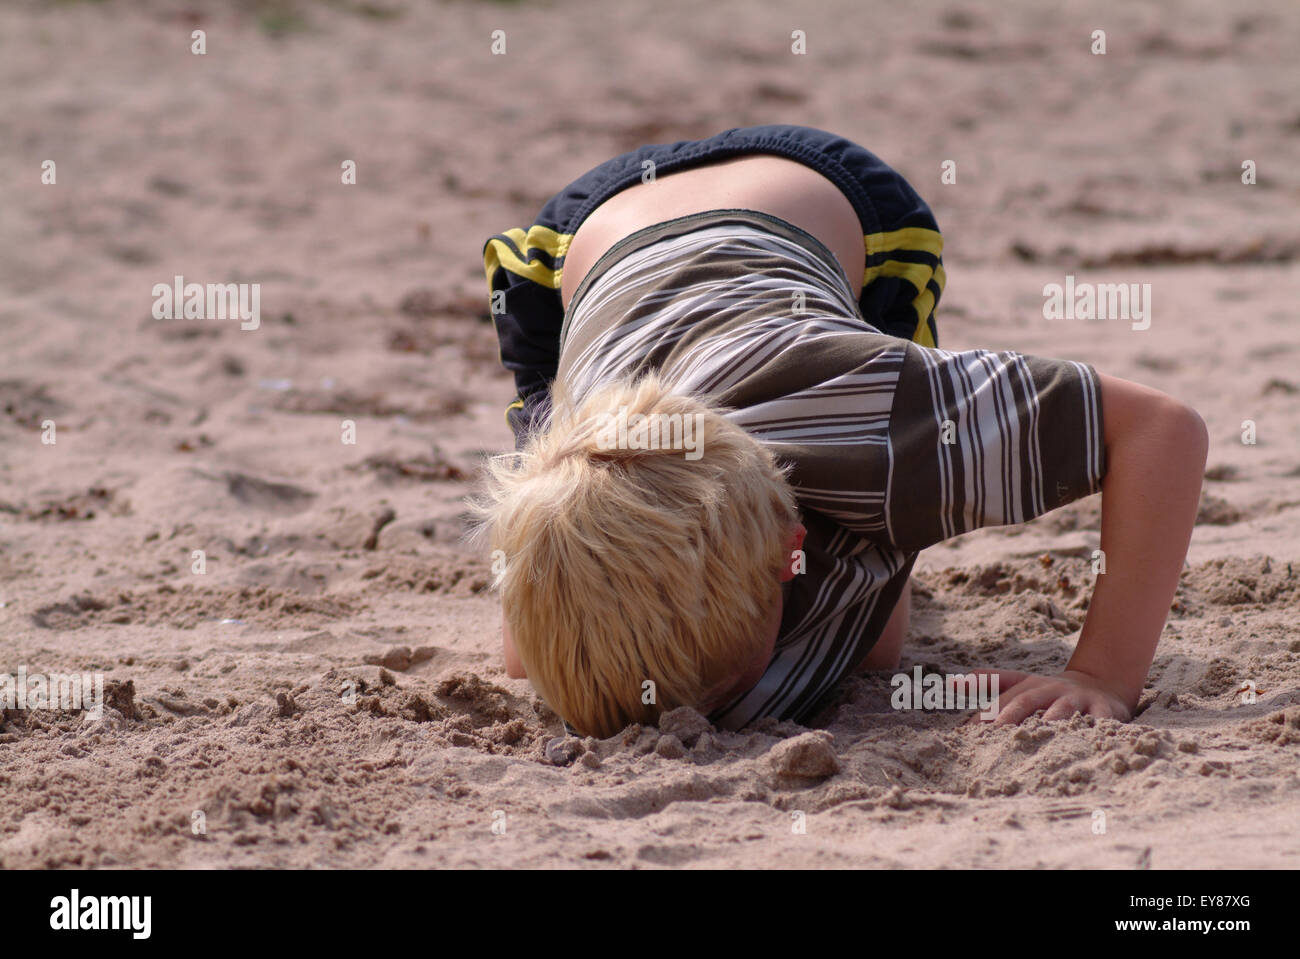 Blonde haired boy digging a deep hole in the sand - Stock Image